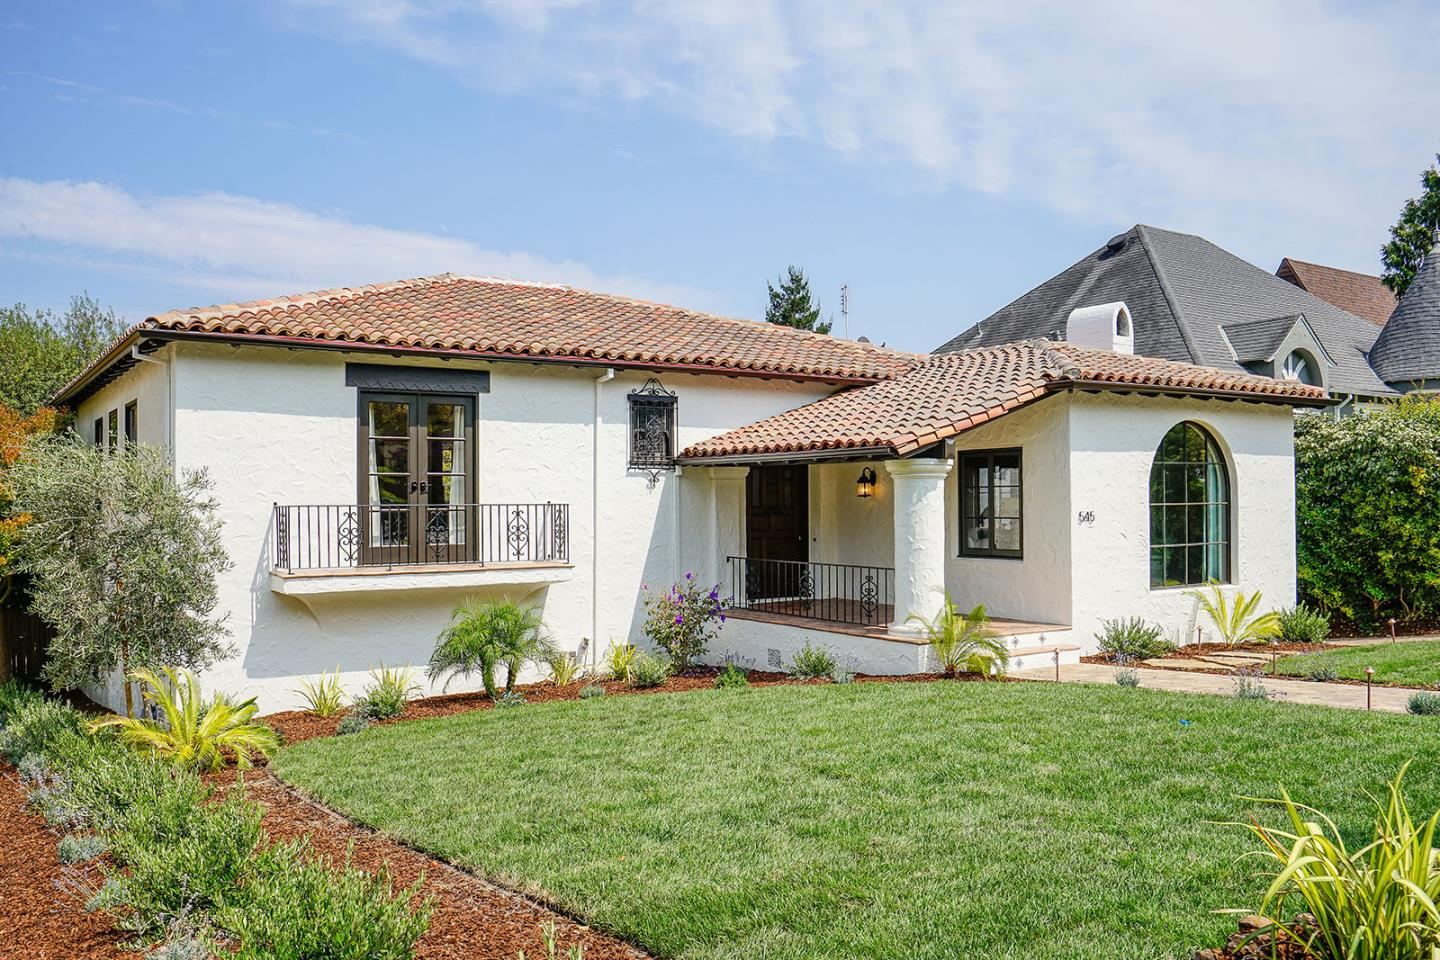 Single Family Home for Sale at 545 Fordham Road San Mateo, California 94402 United States